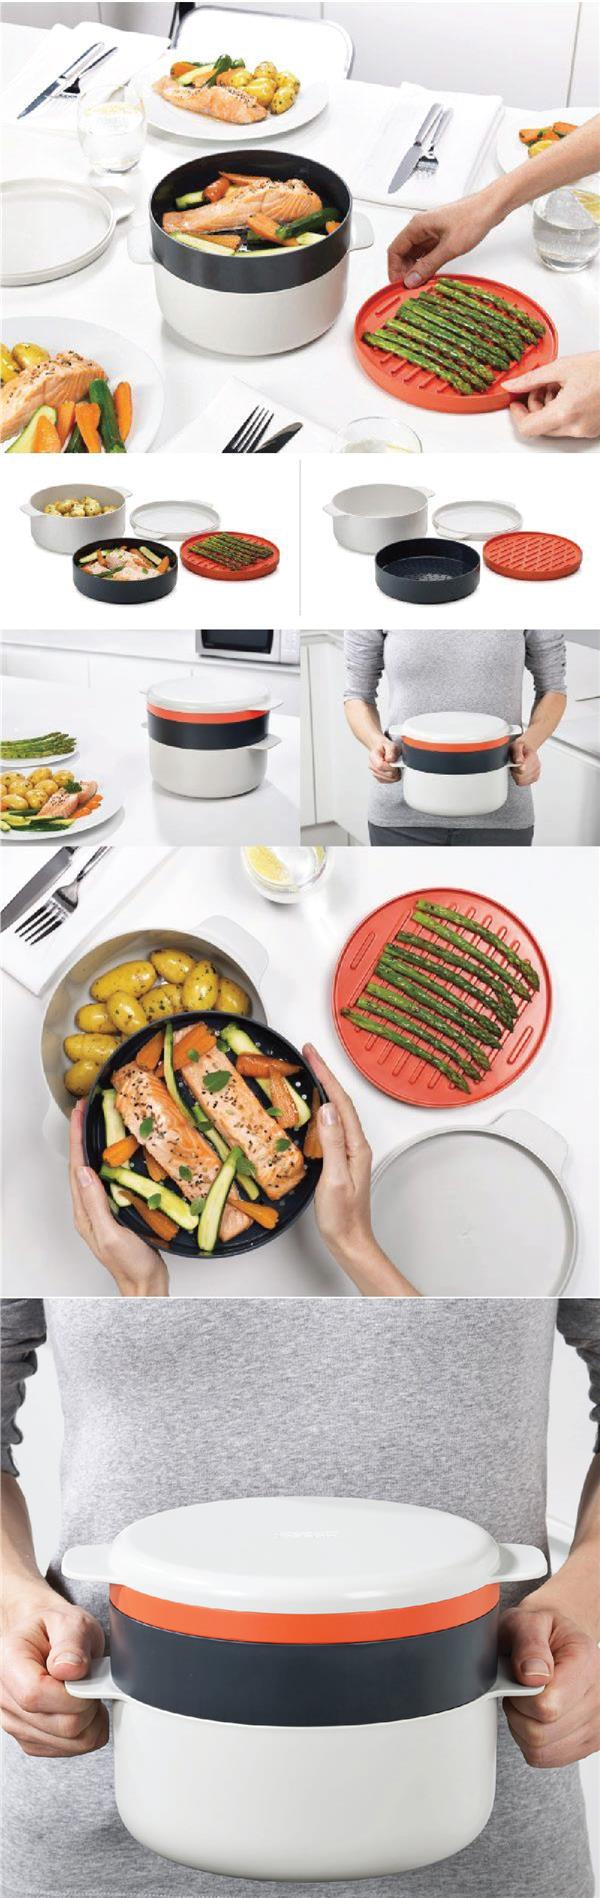 M Cuisine Microwave 4 Piece Stackable Cooking Set Pot Steamer Griddle